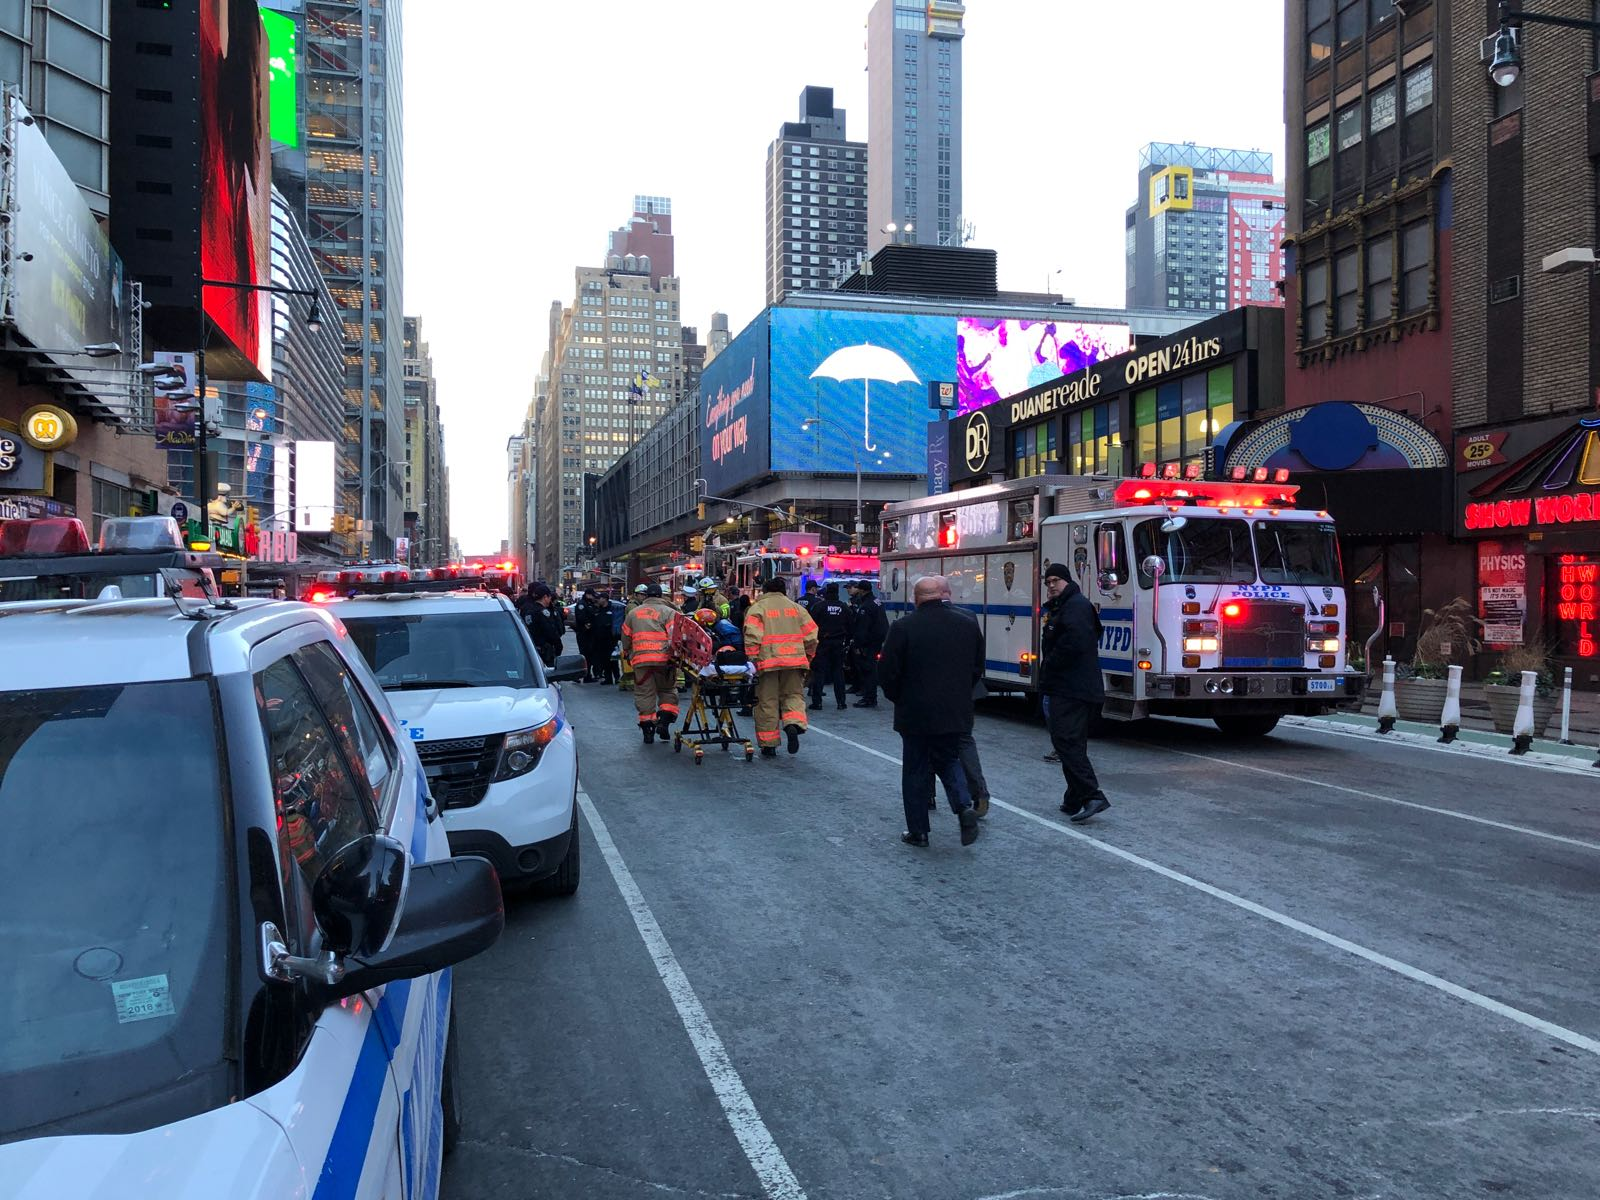 Explosion reported at New York City transit hub near Times Square